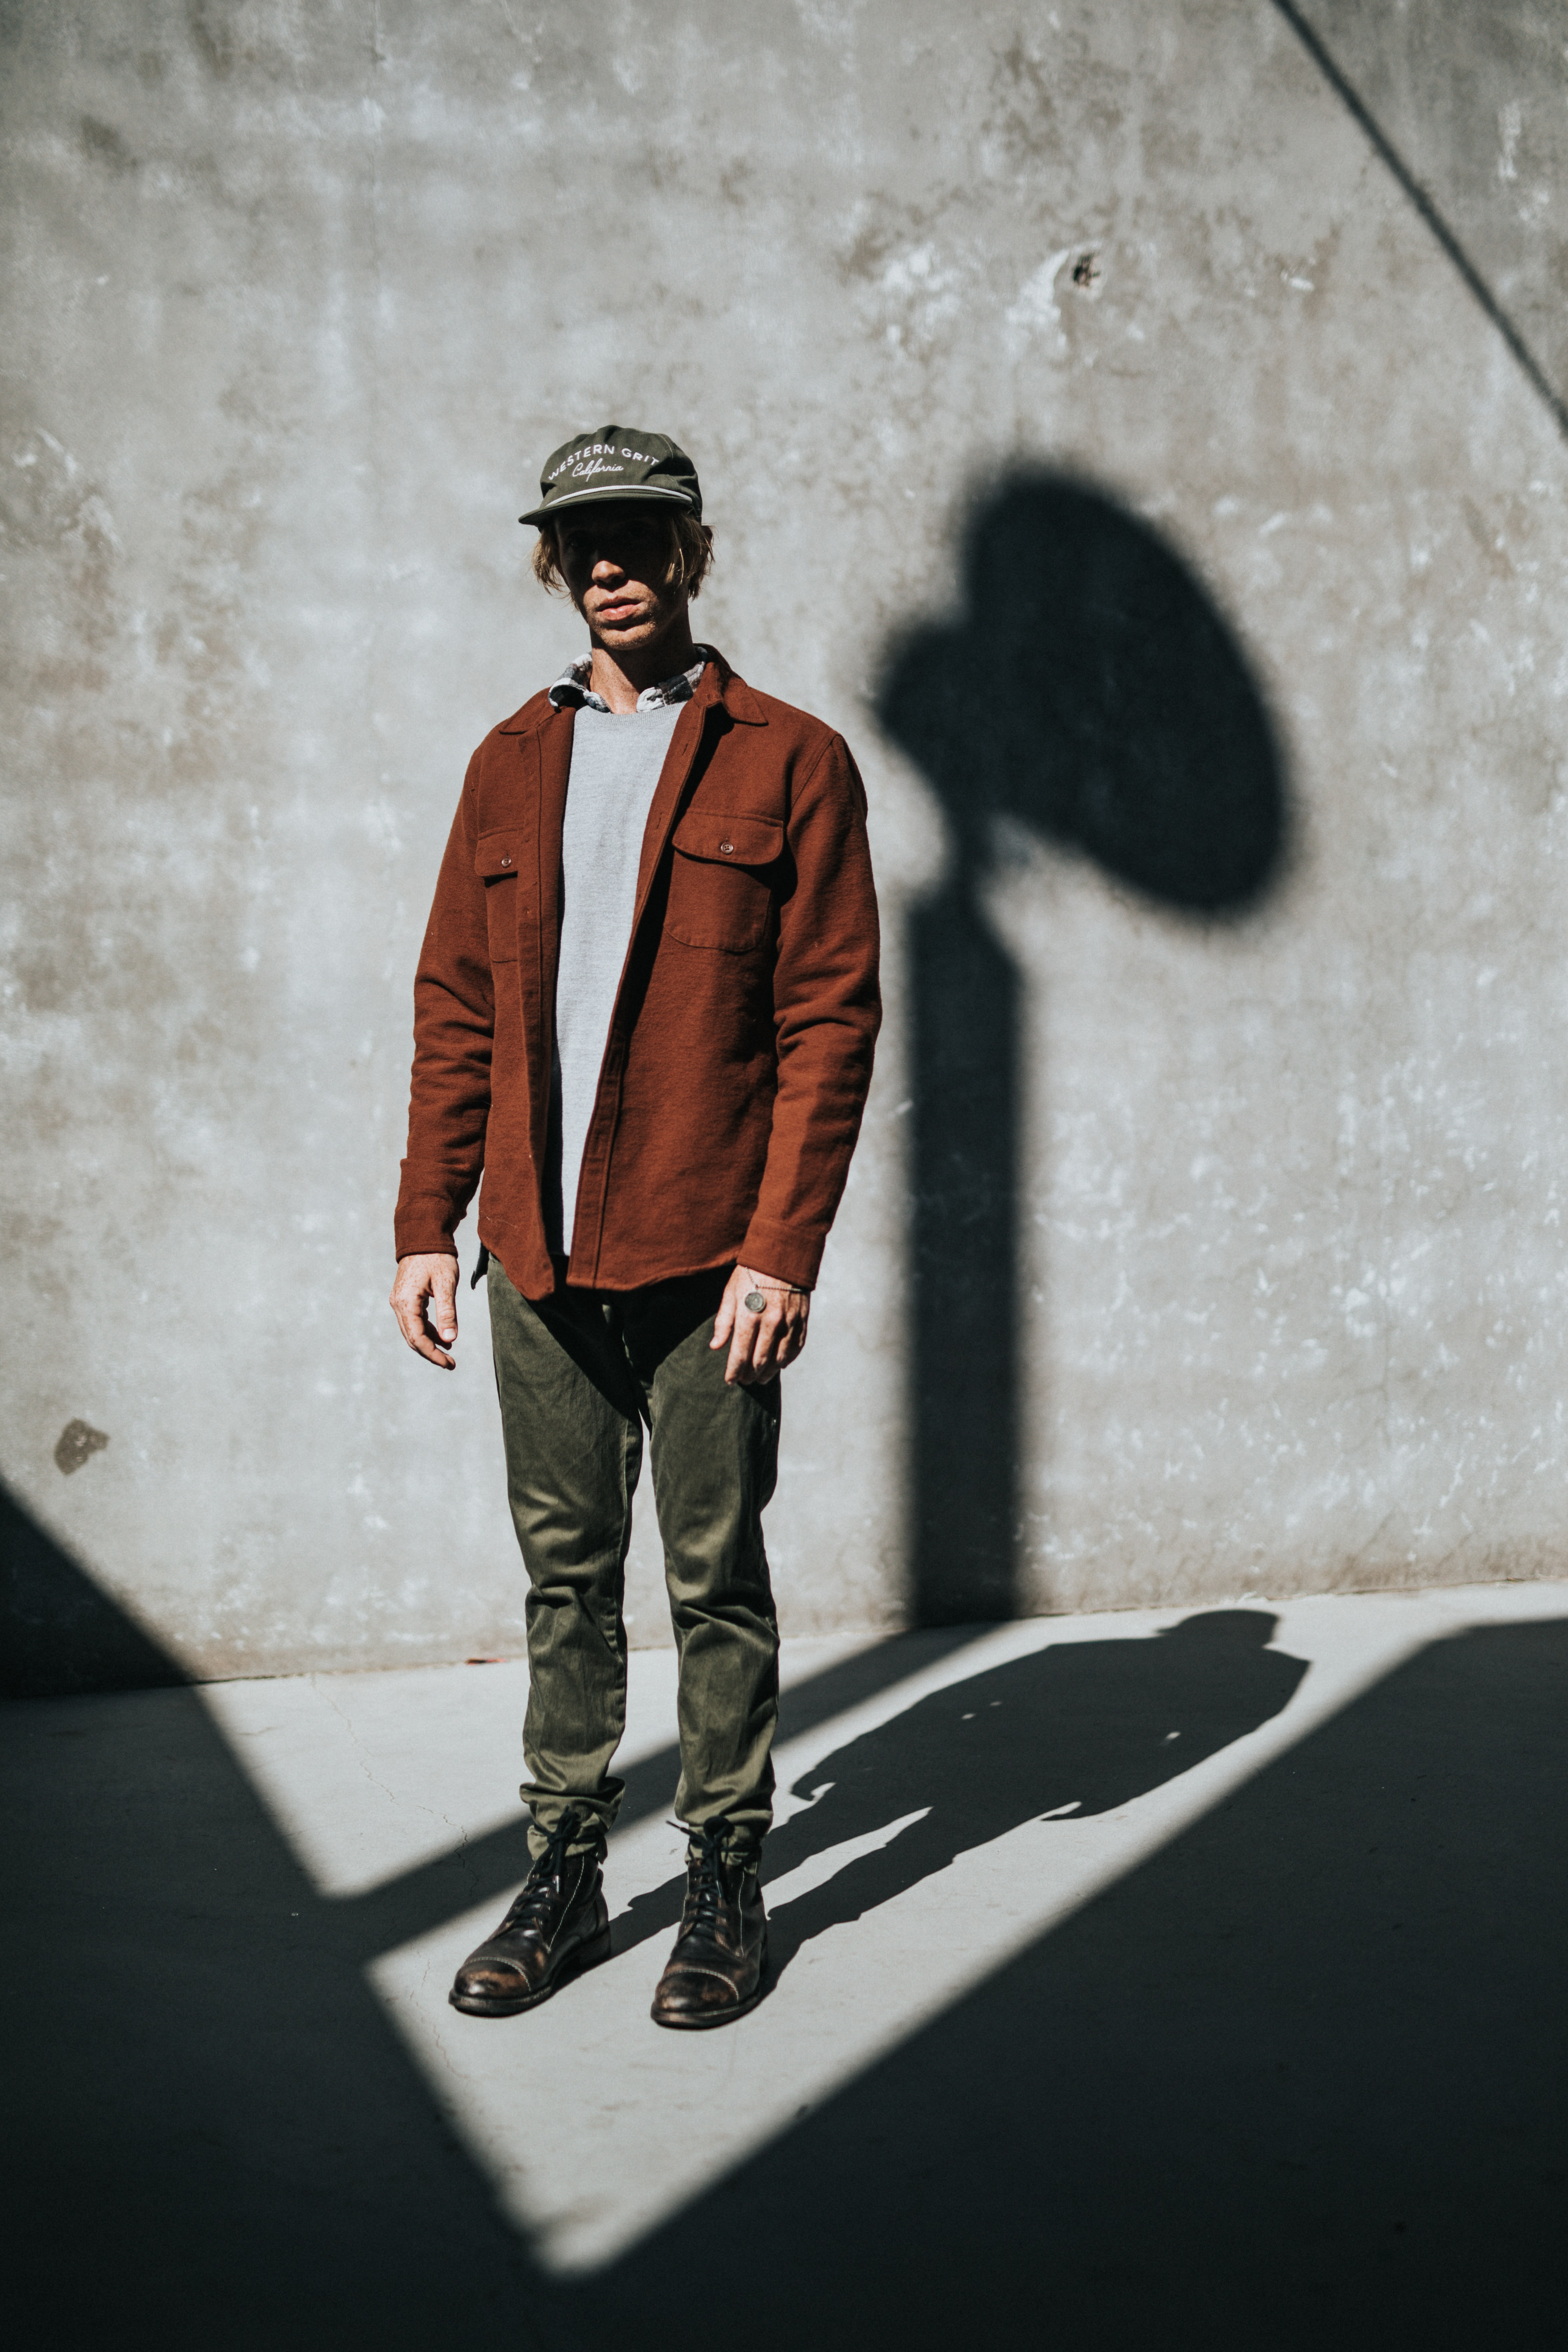 man stands near concrete wall with shadow